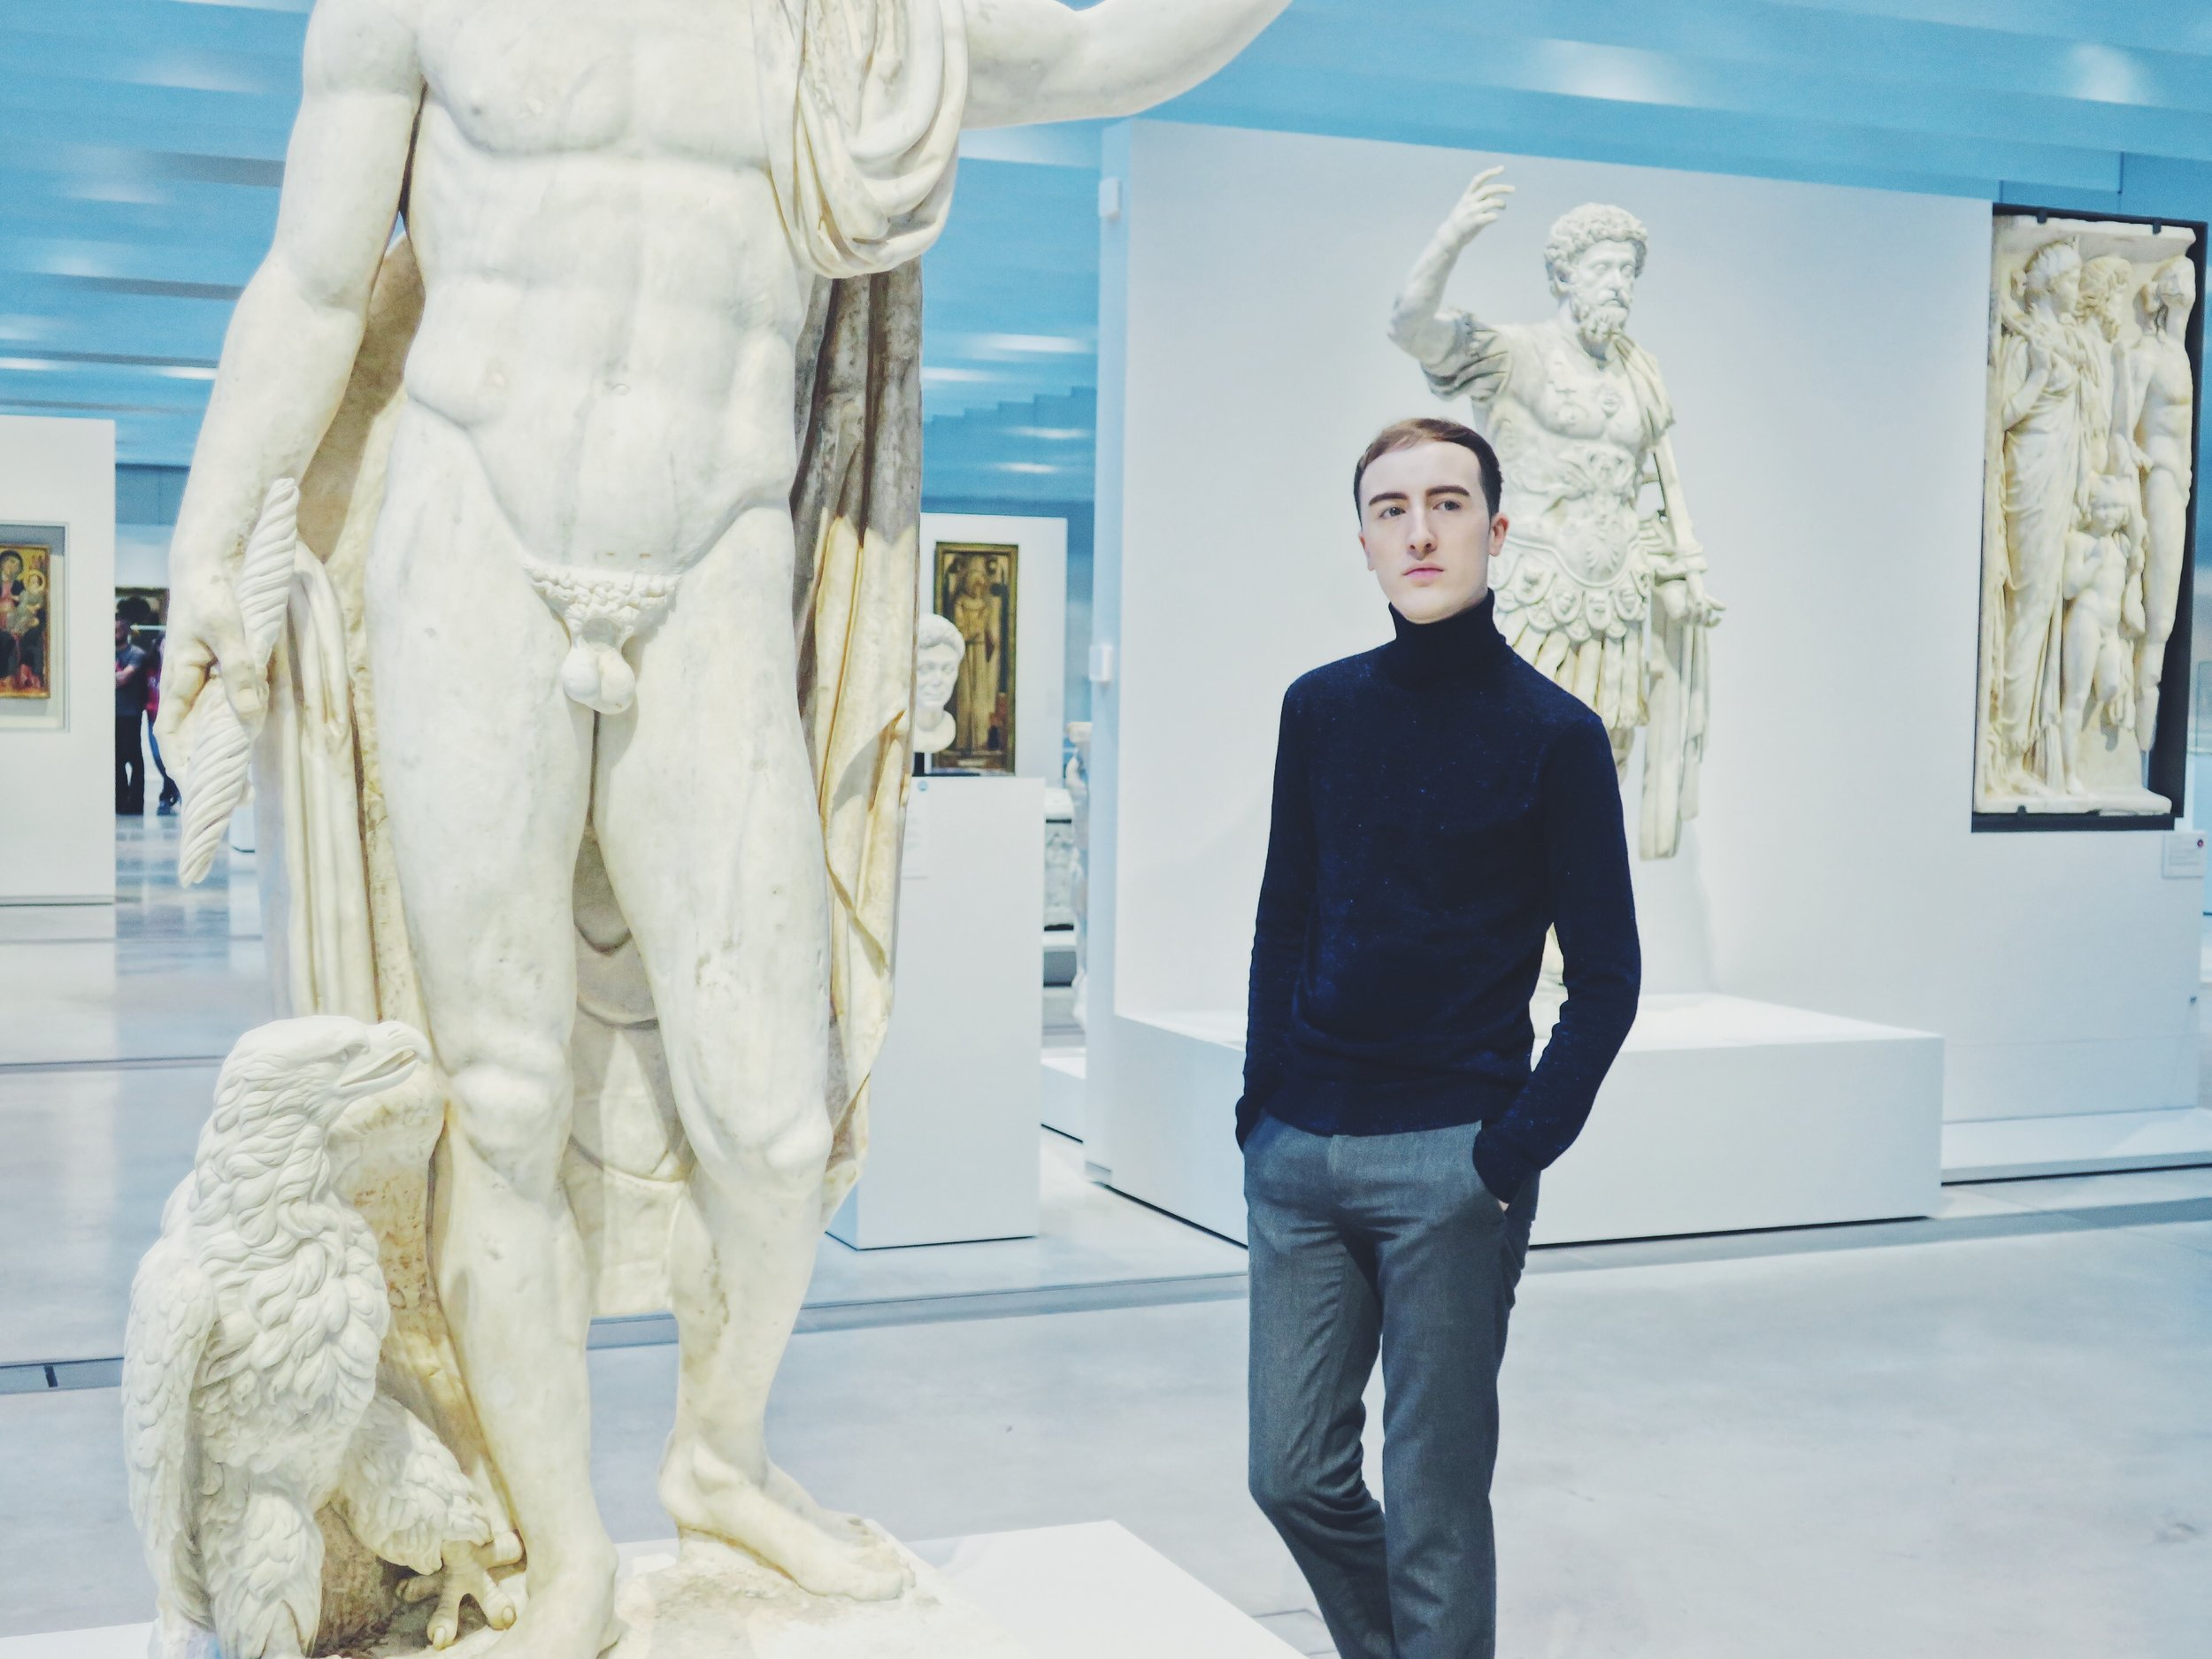 A weekend around the Louvre-Lens